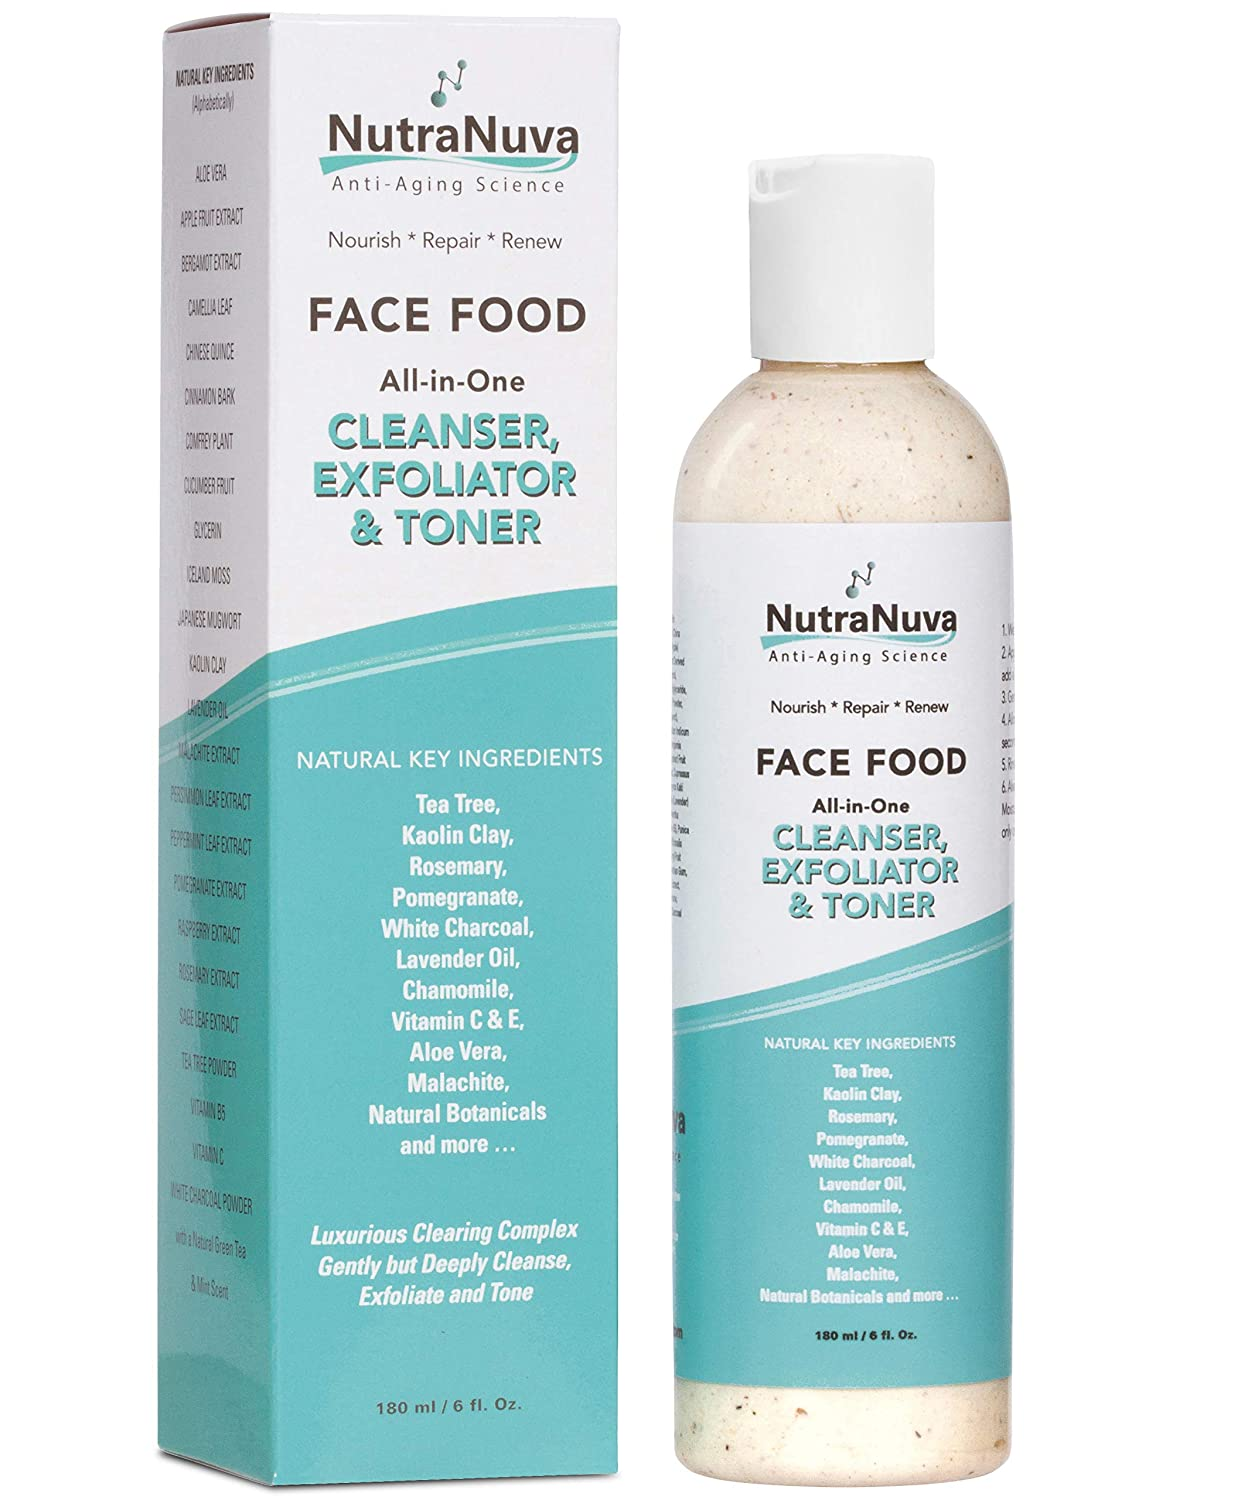 Check out this face wash today to help improve your oily skin.